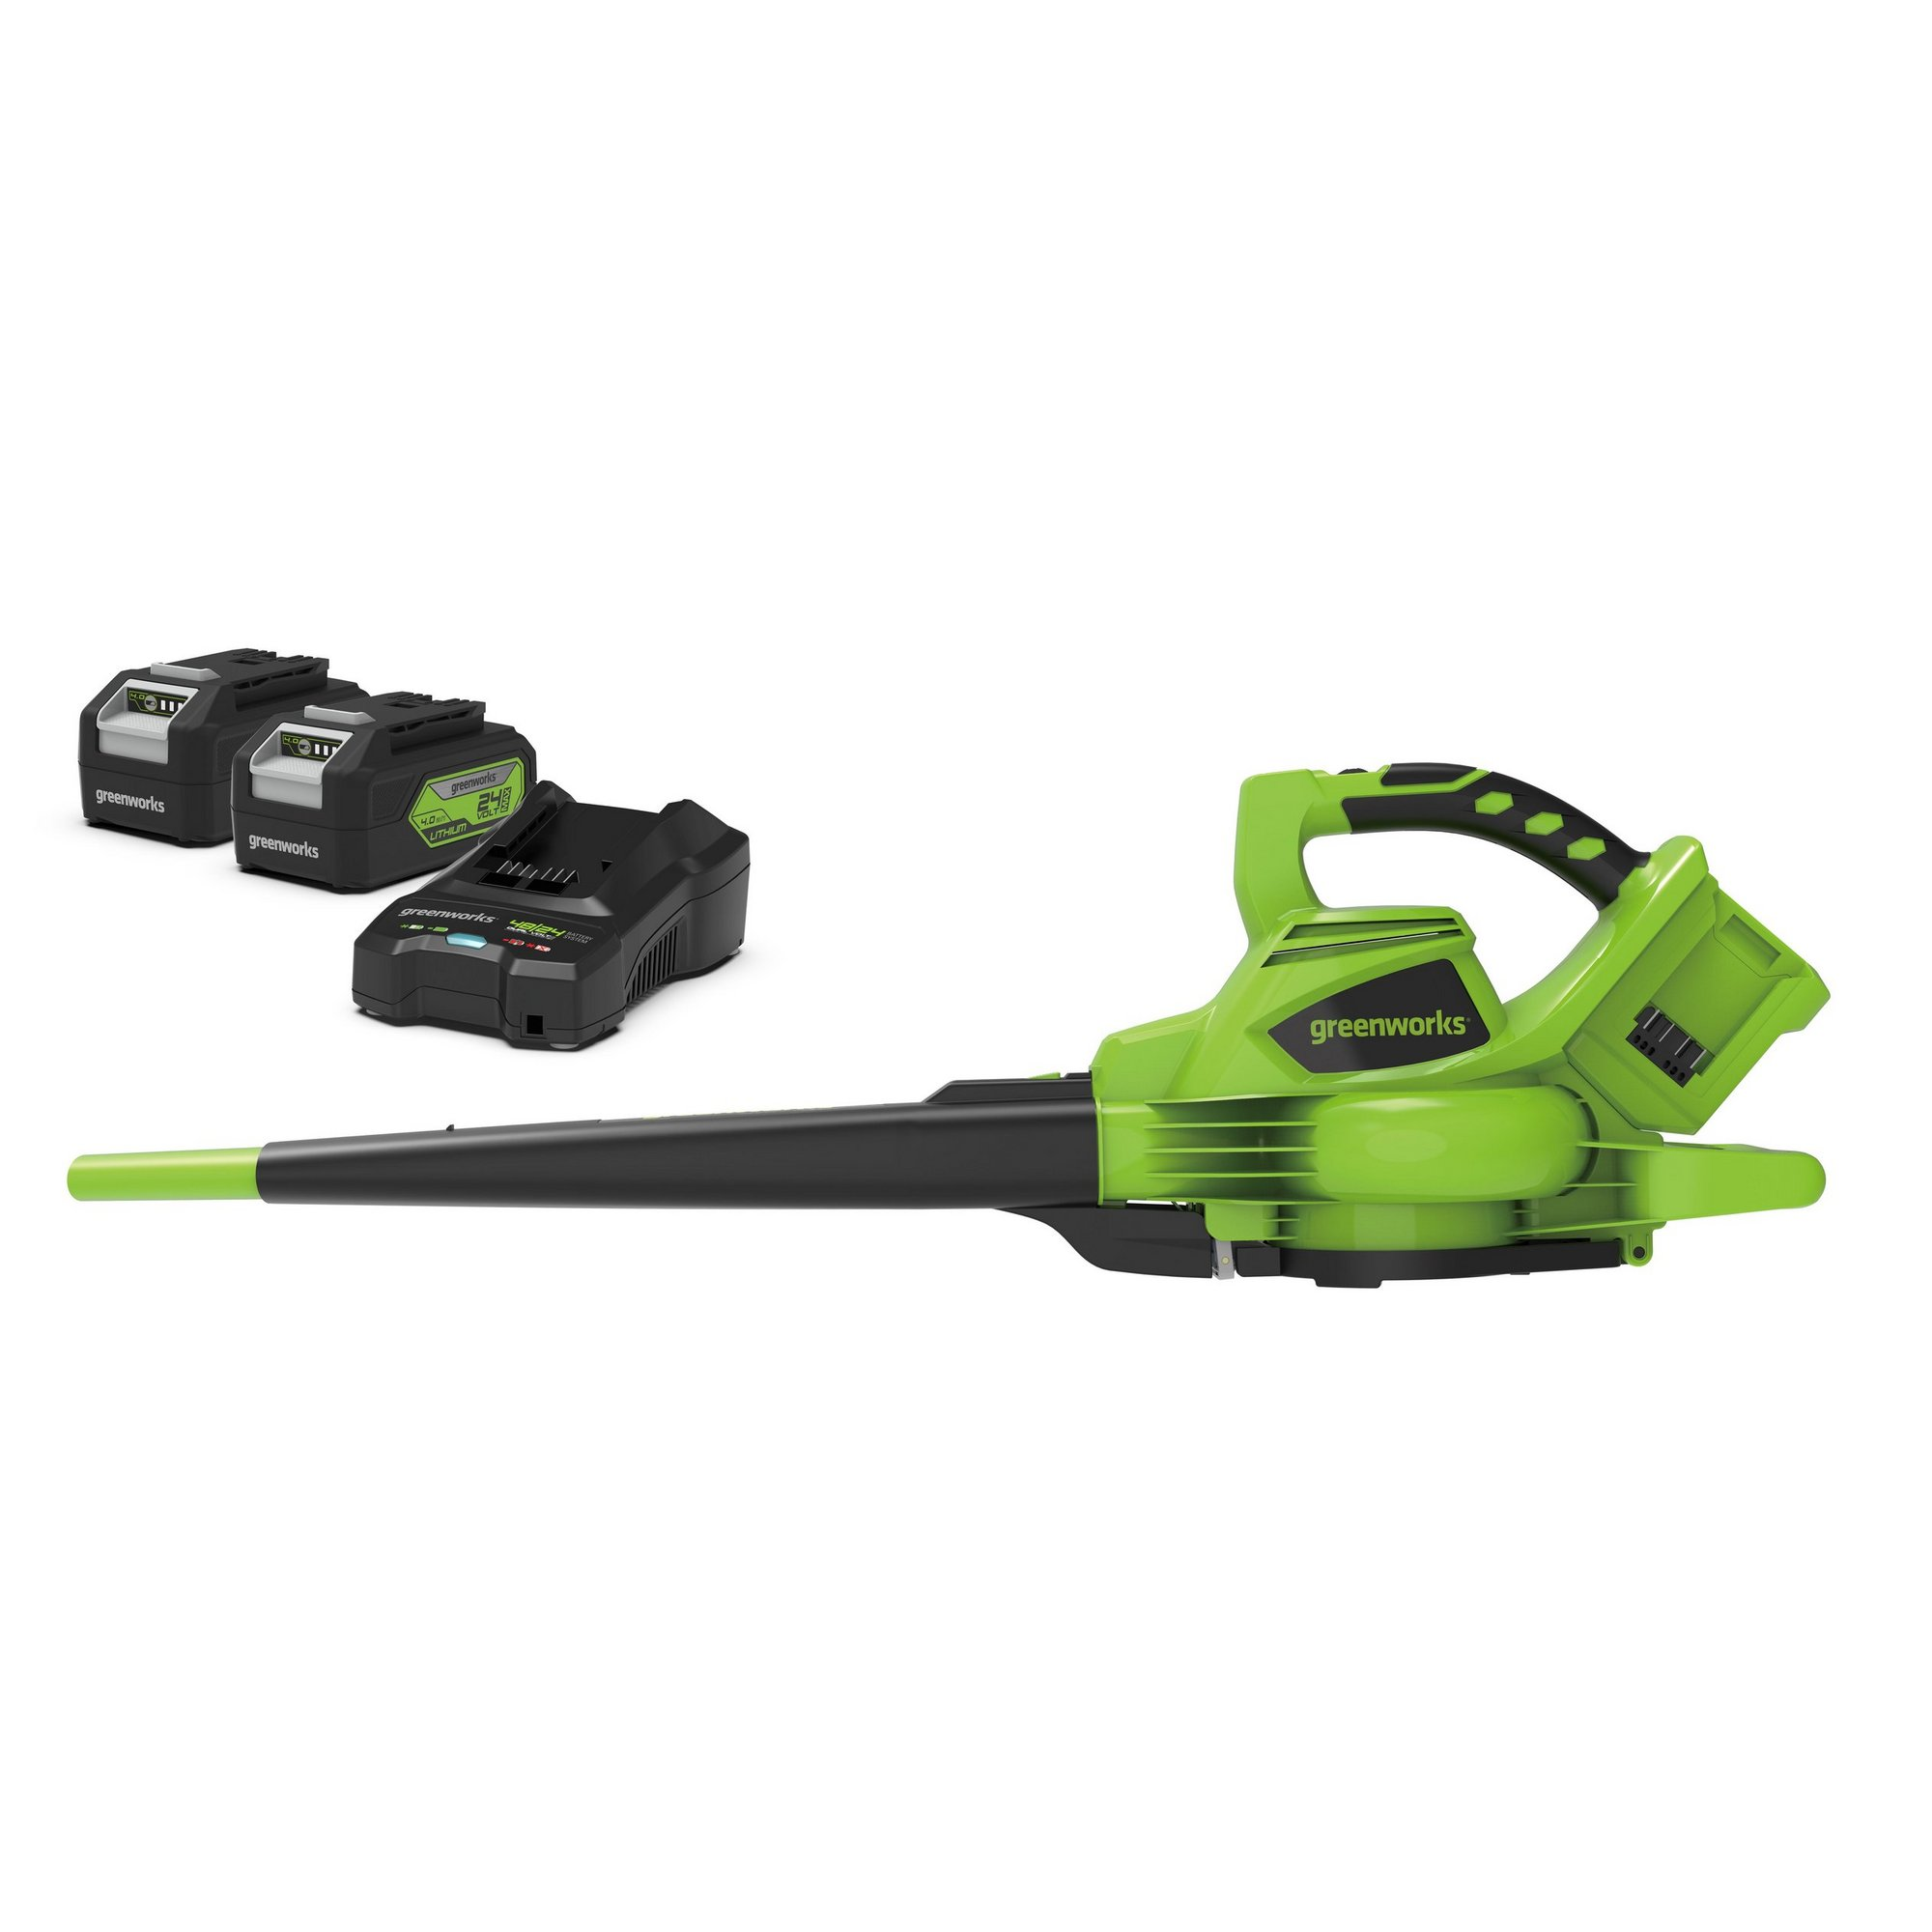 Image of Greenworks 48V Cordless Blower and Vacuum with 2 x 24V 4Ah Batter...